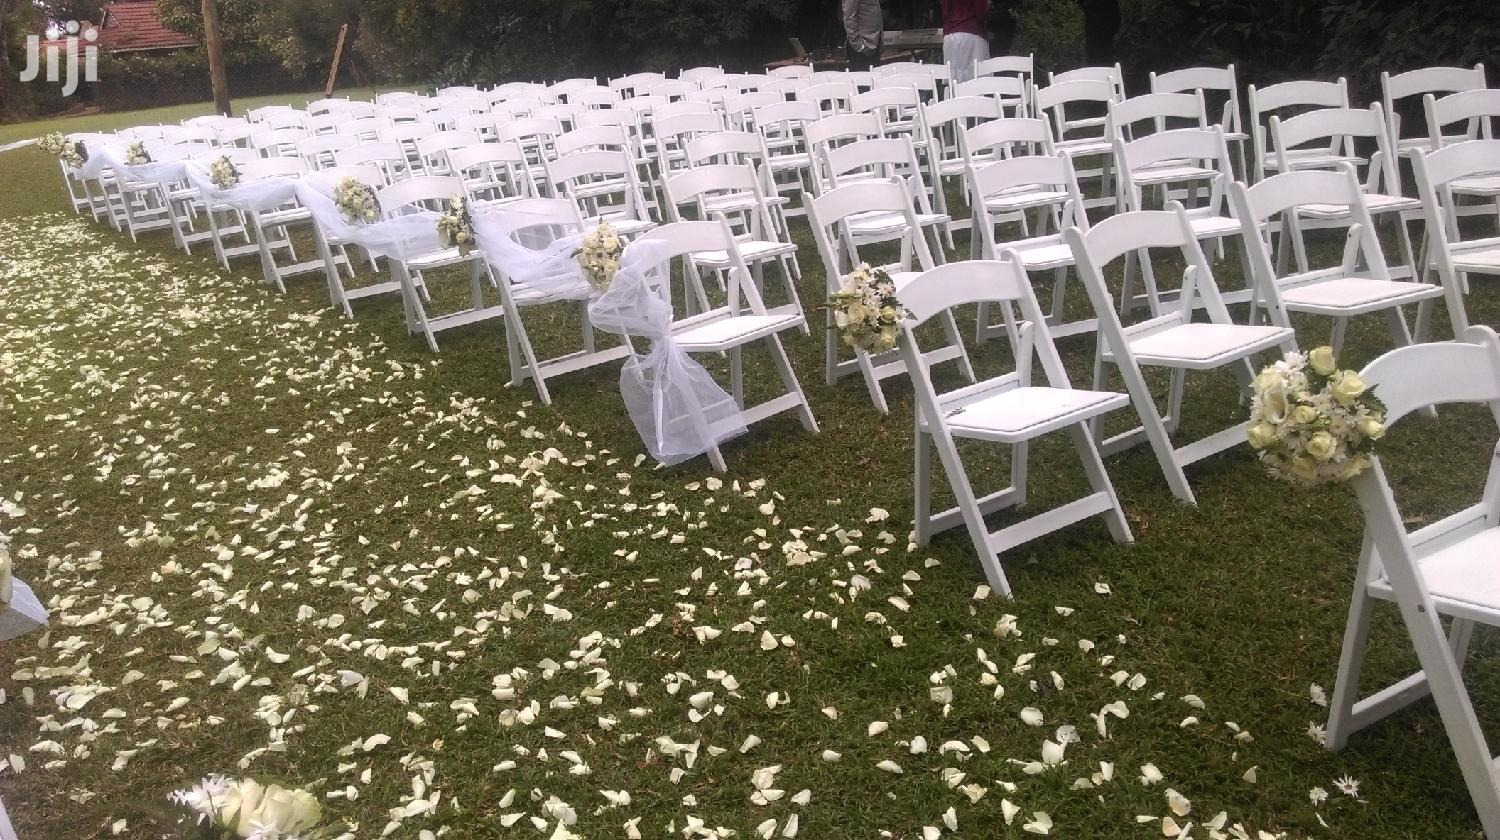 Archive: Tents And Chairs For Wedding And Corporate Events For Hire